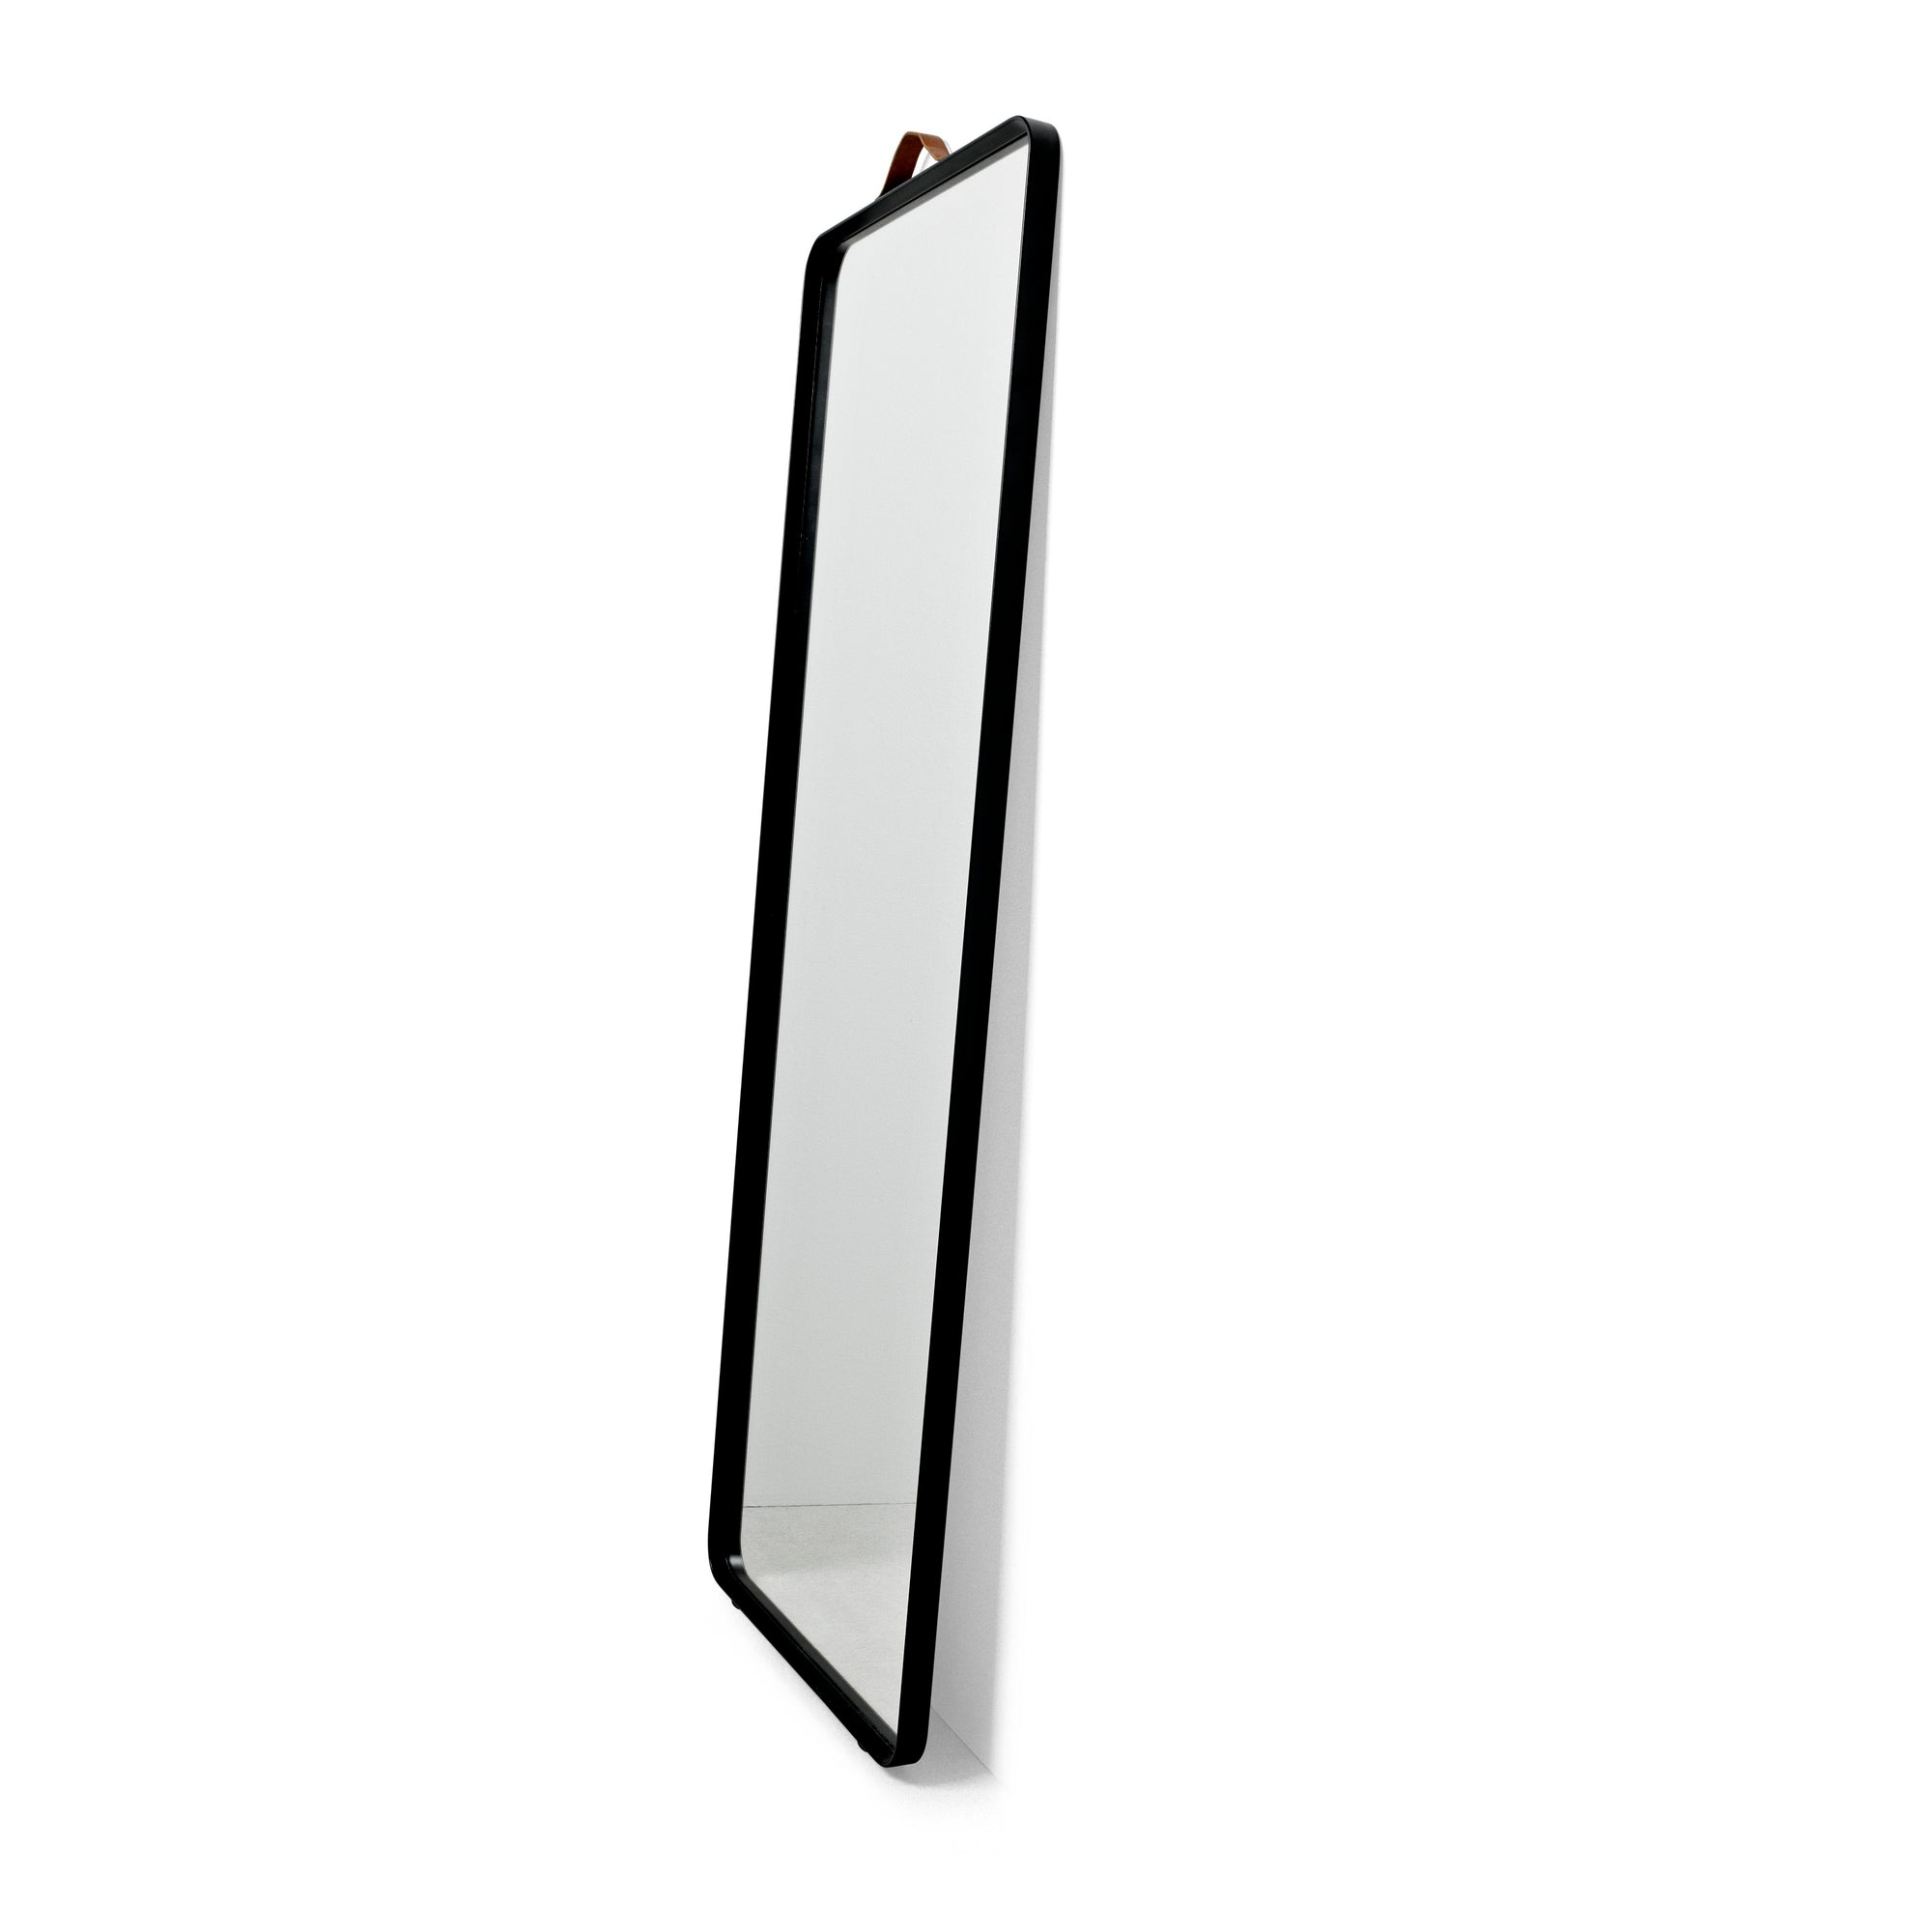 Norm Floor Mirror- Black